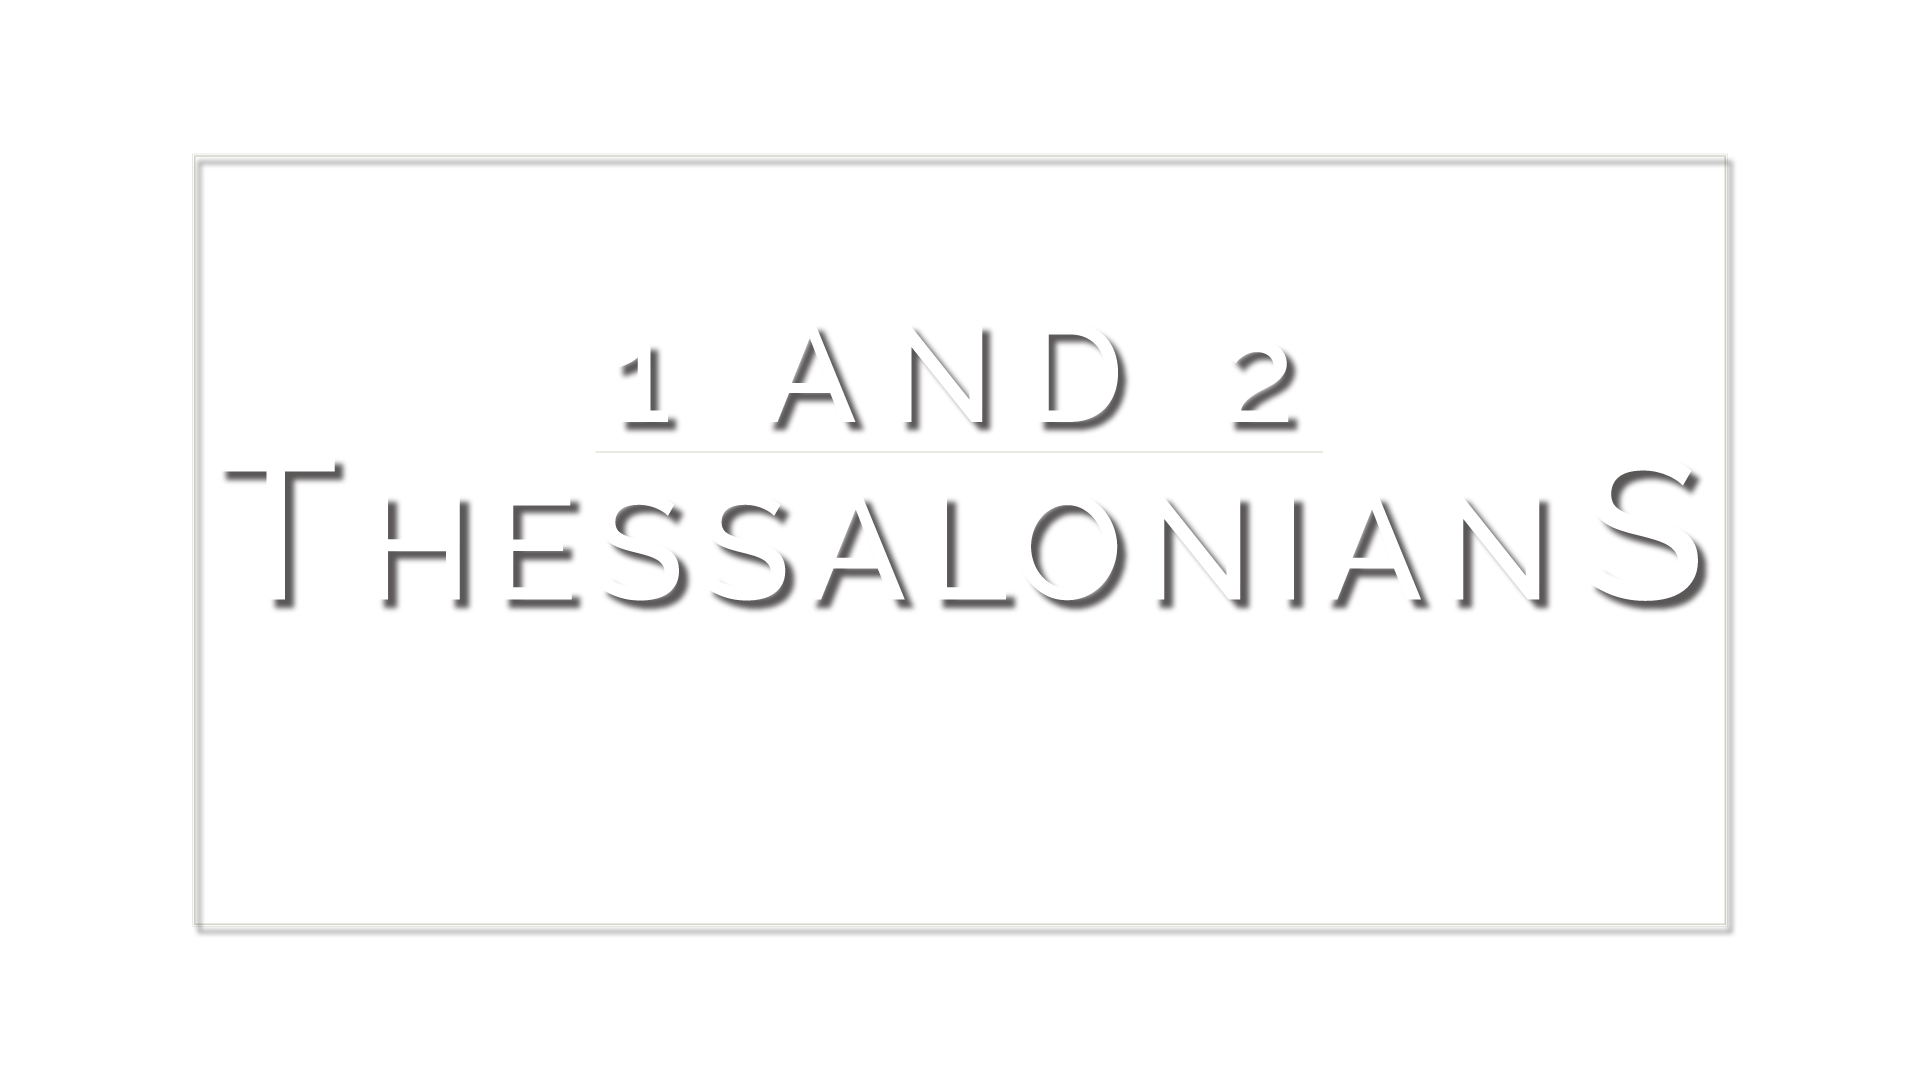 1-&-2-Thessalonians-Foreground